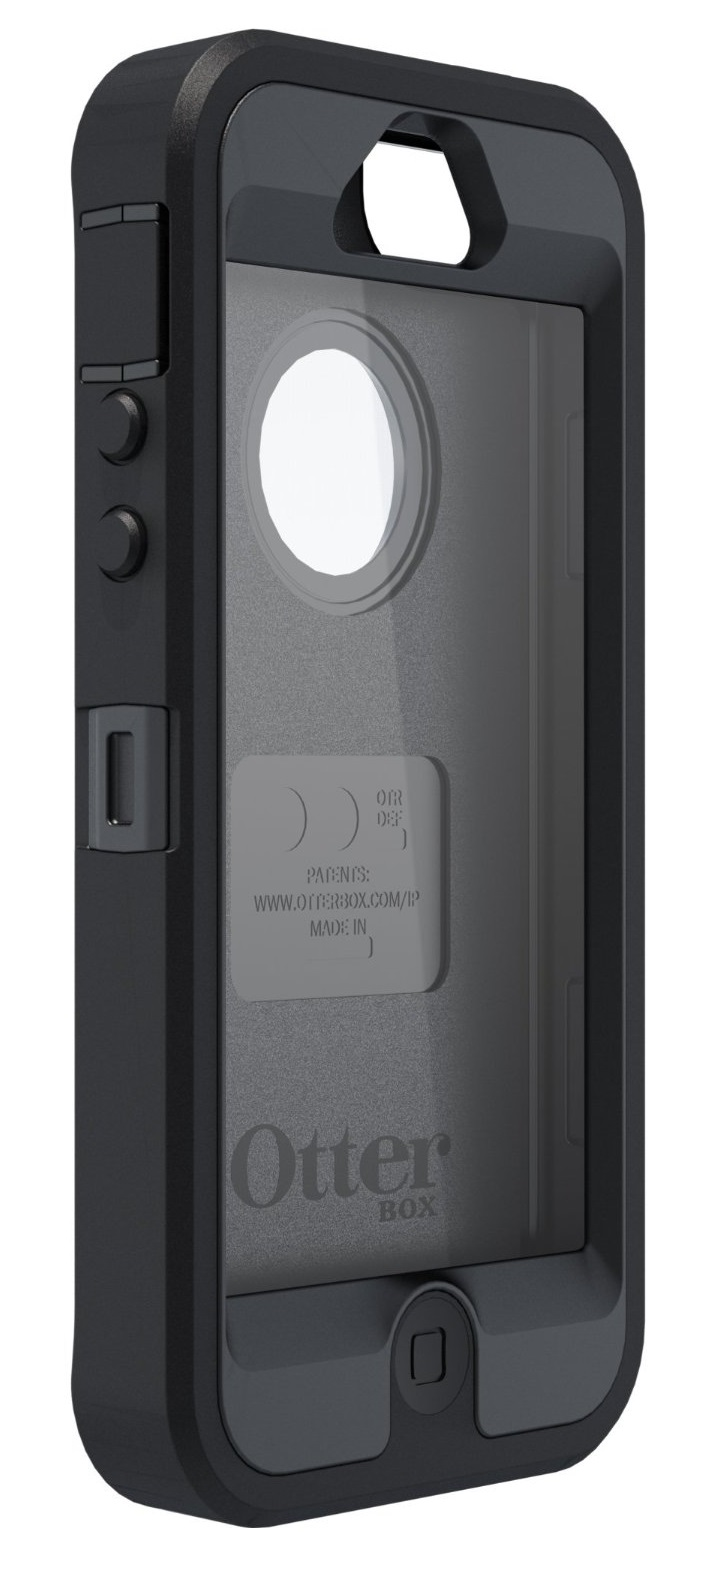 otterbox cases for iphone 5s otterbox defender belt holster for apple iphone 5 4092